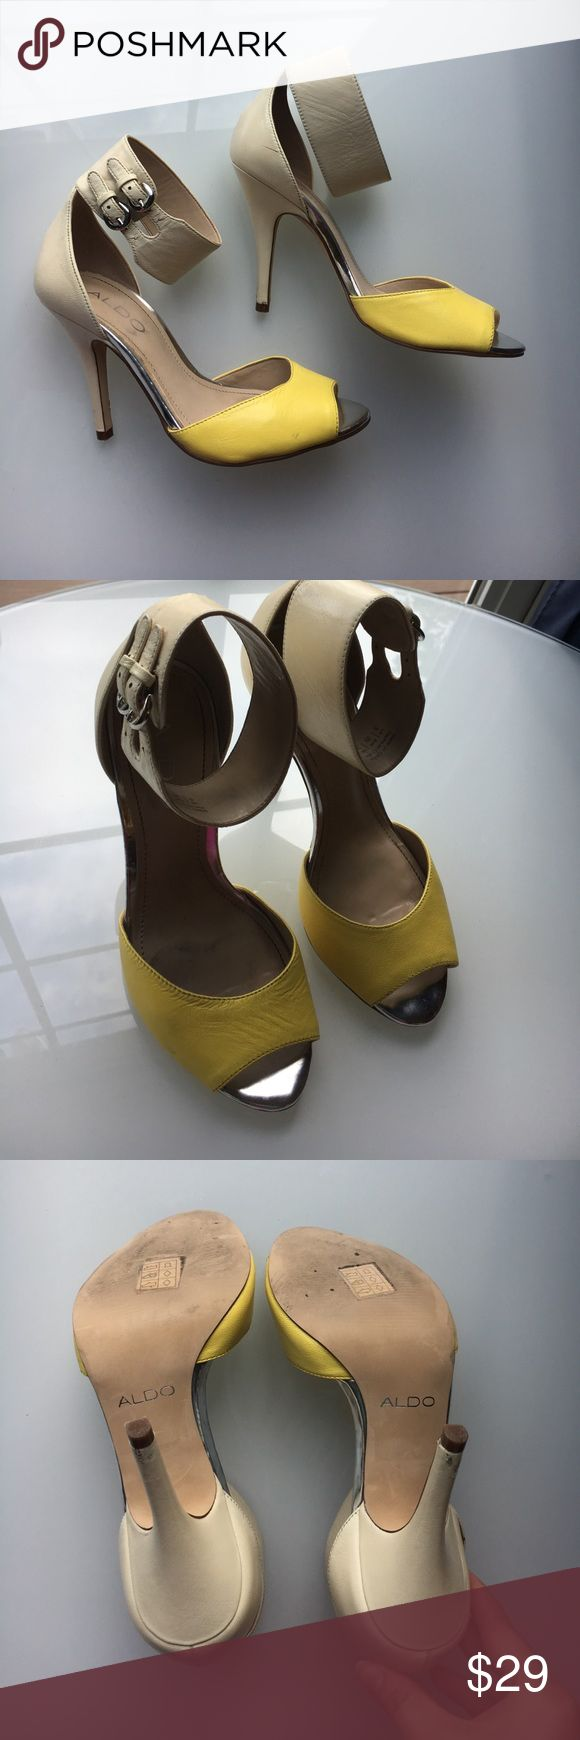 Sexy yellow and tan Aldo heels Sexy yellow and tan Aldo heels . They are used. Price reflects. Aldo Shoes Heels